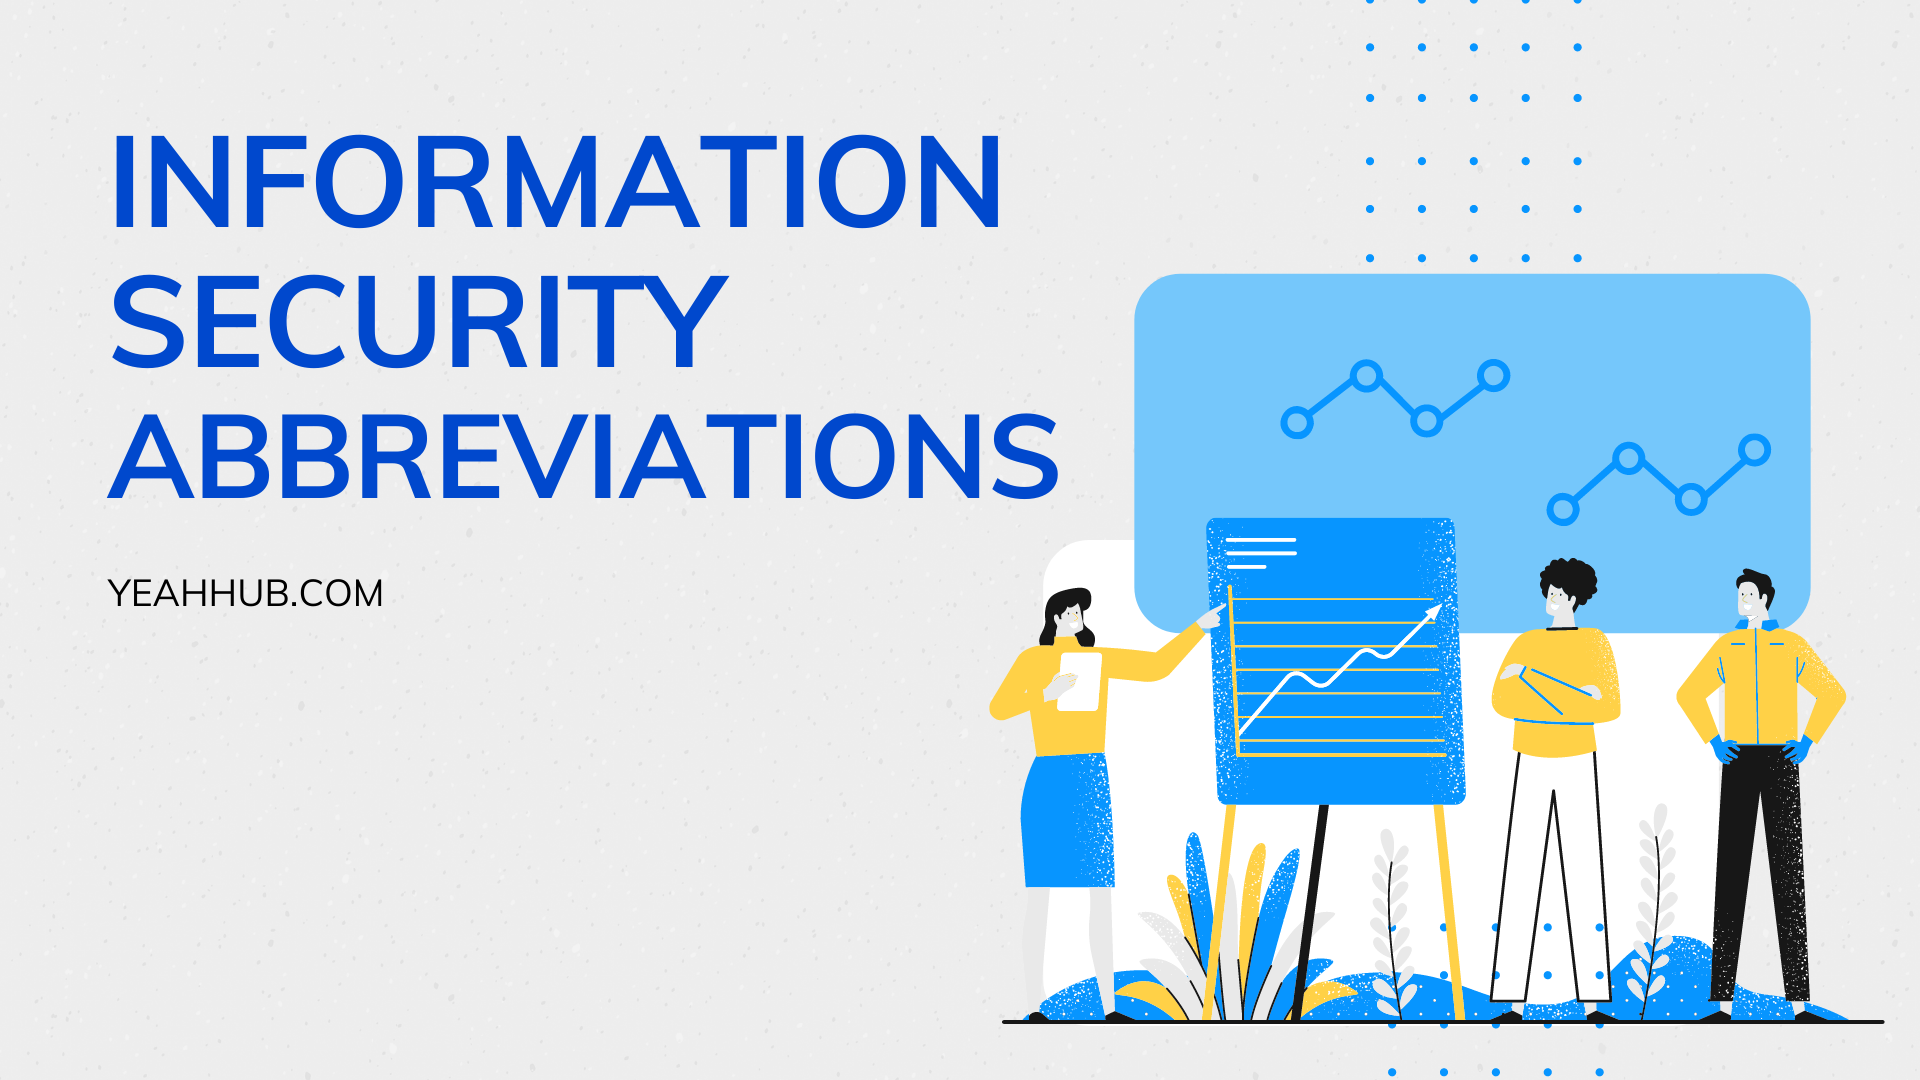 Information Security Abbreviations